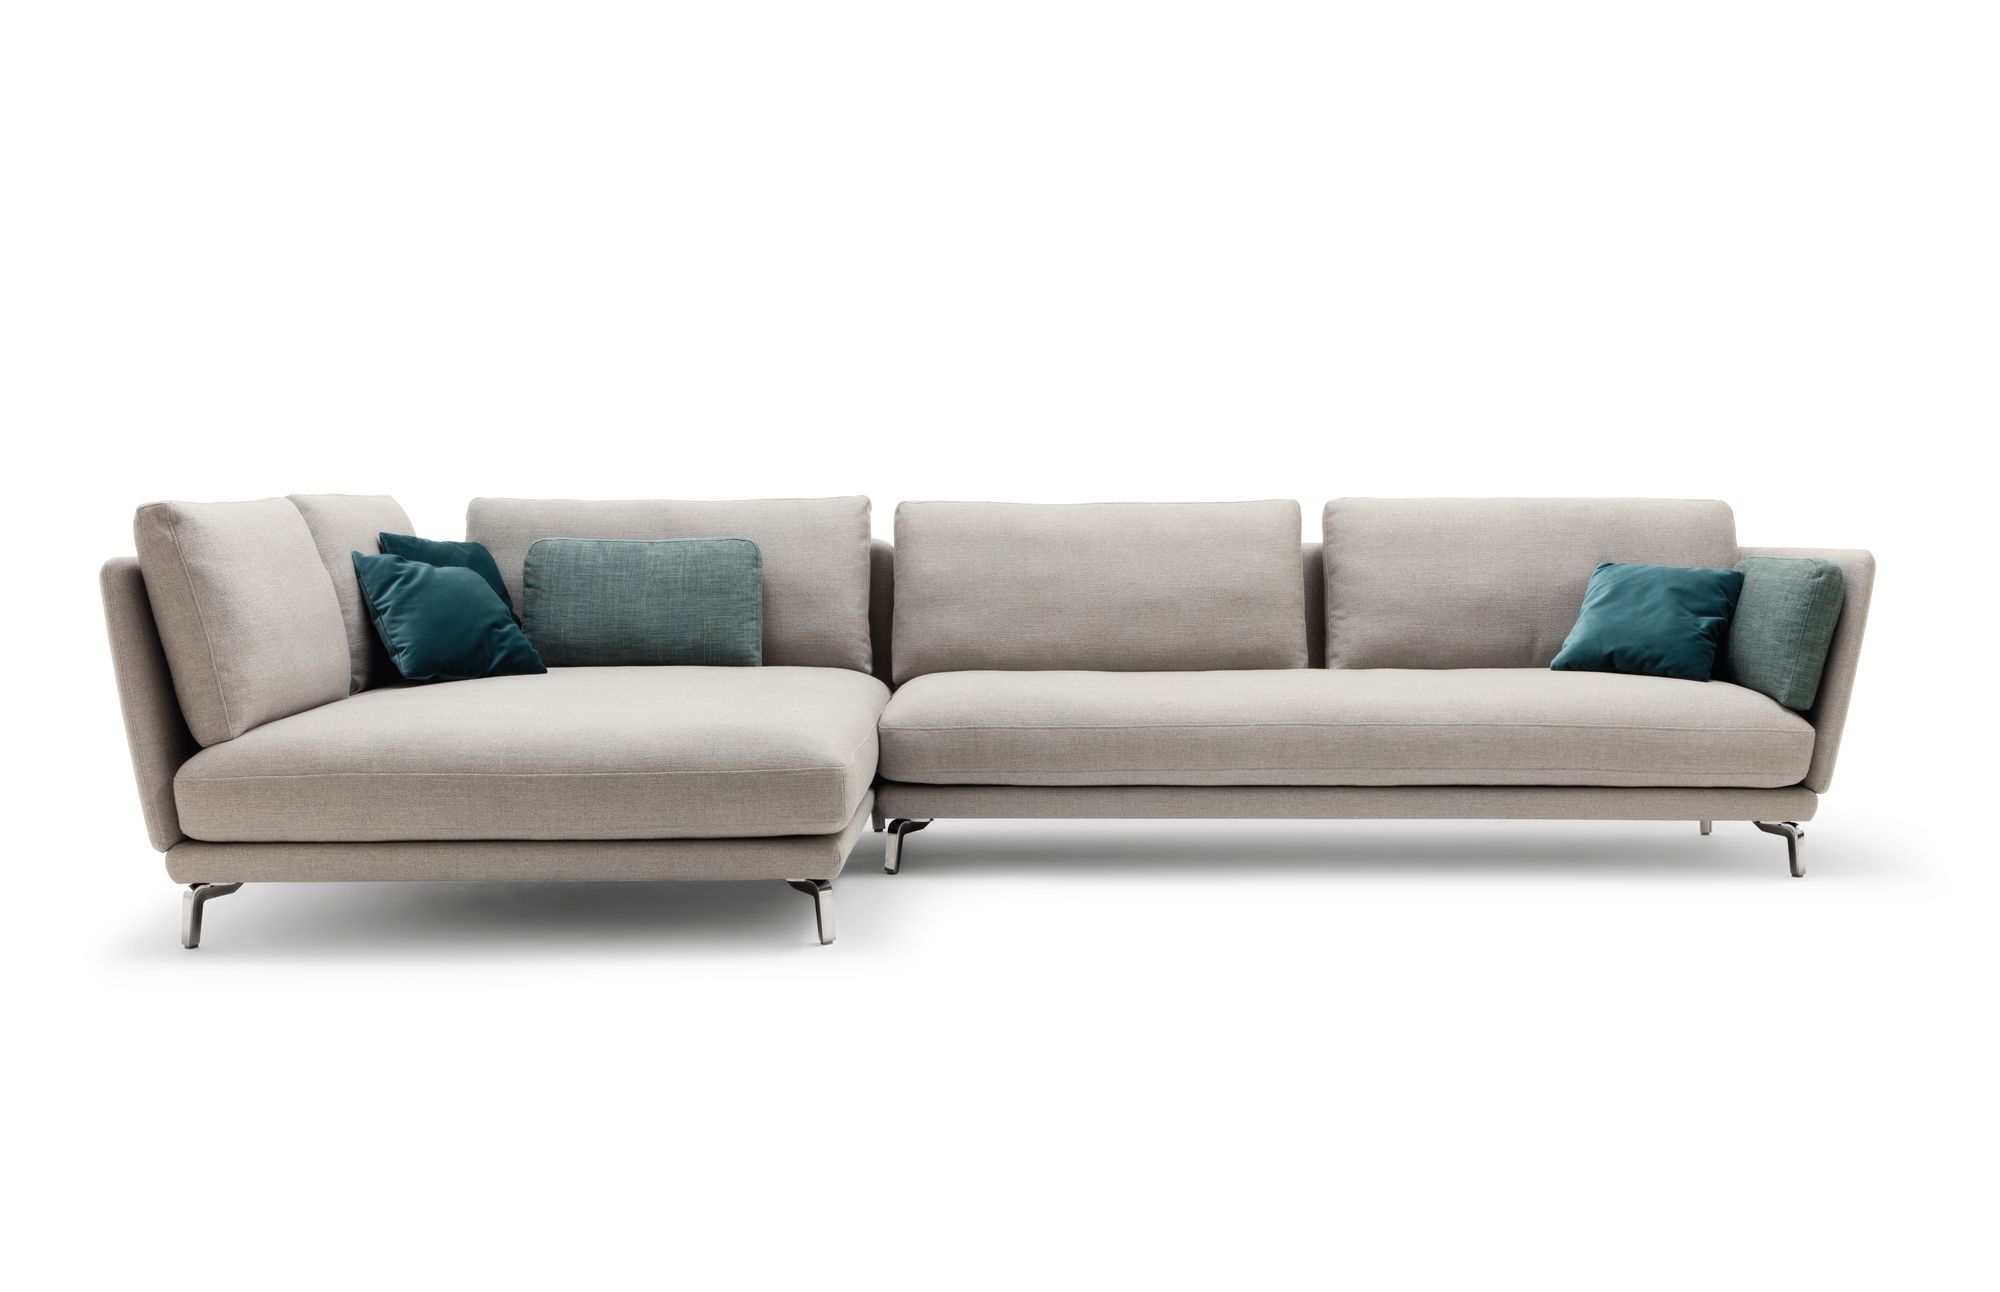 Rolf Benz Couch Rolf Benz Cara Gallery Of Sofa Rolf Benz Cara Mbel Bise With Rolf